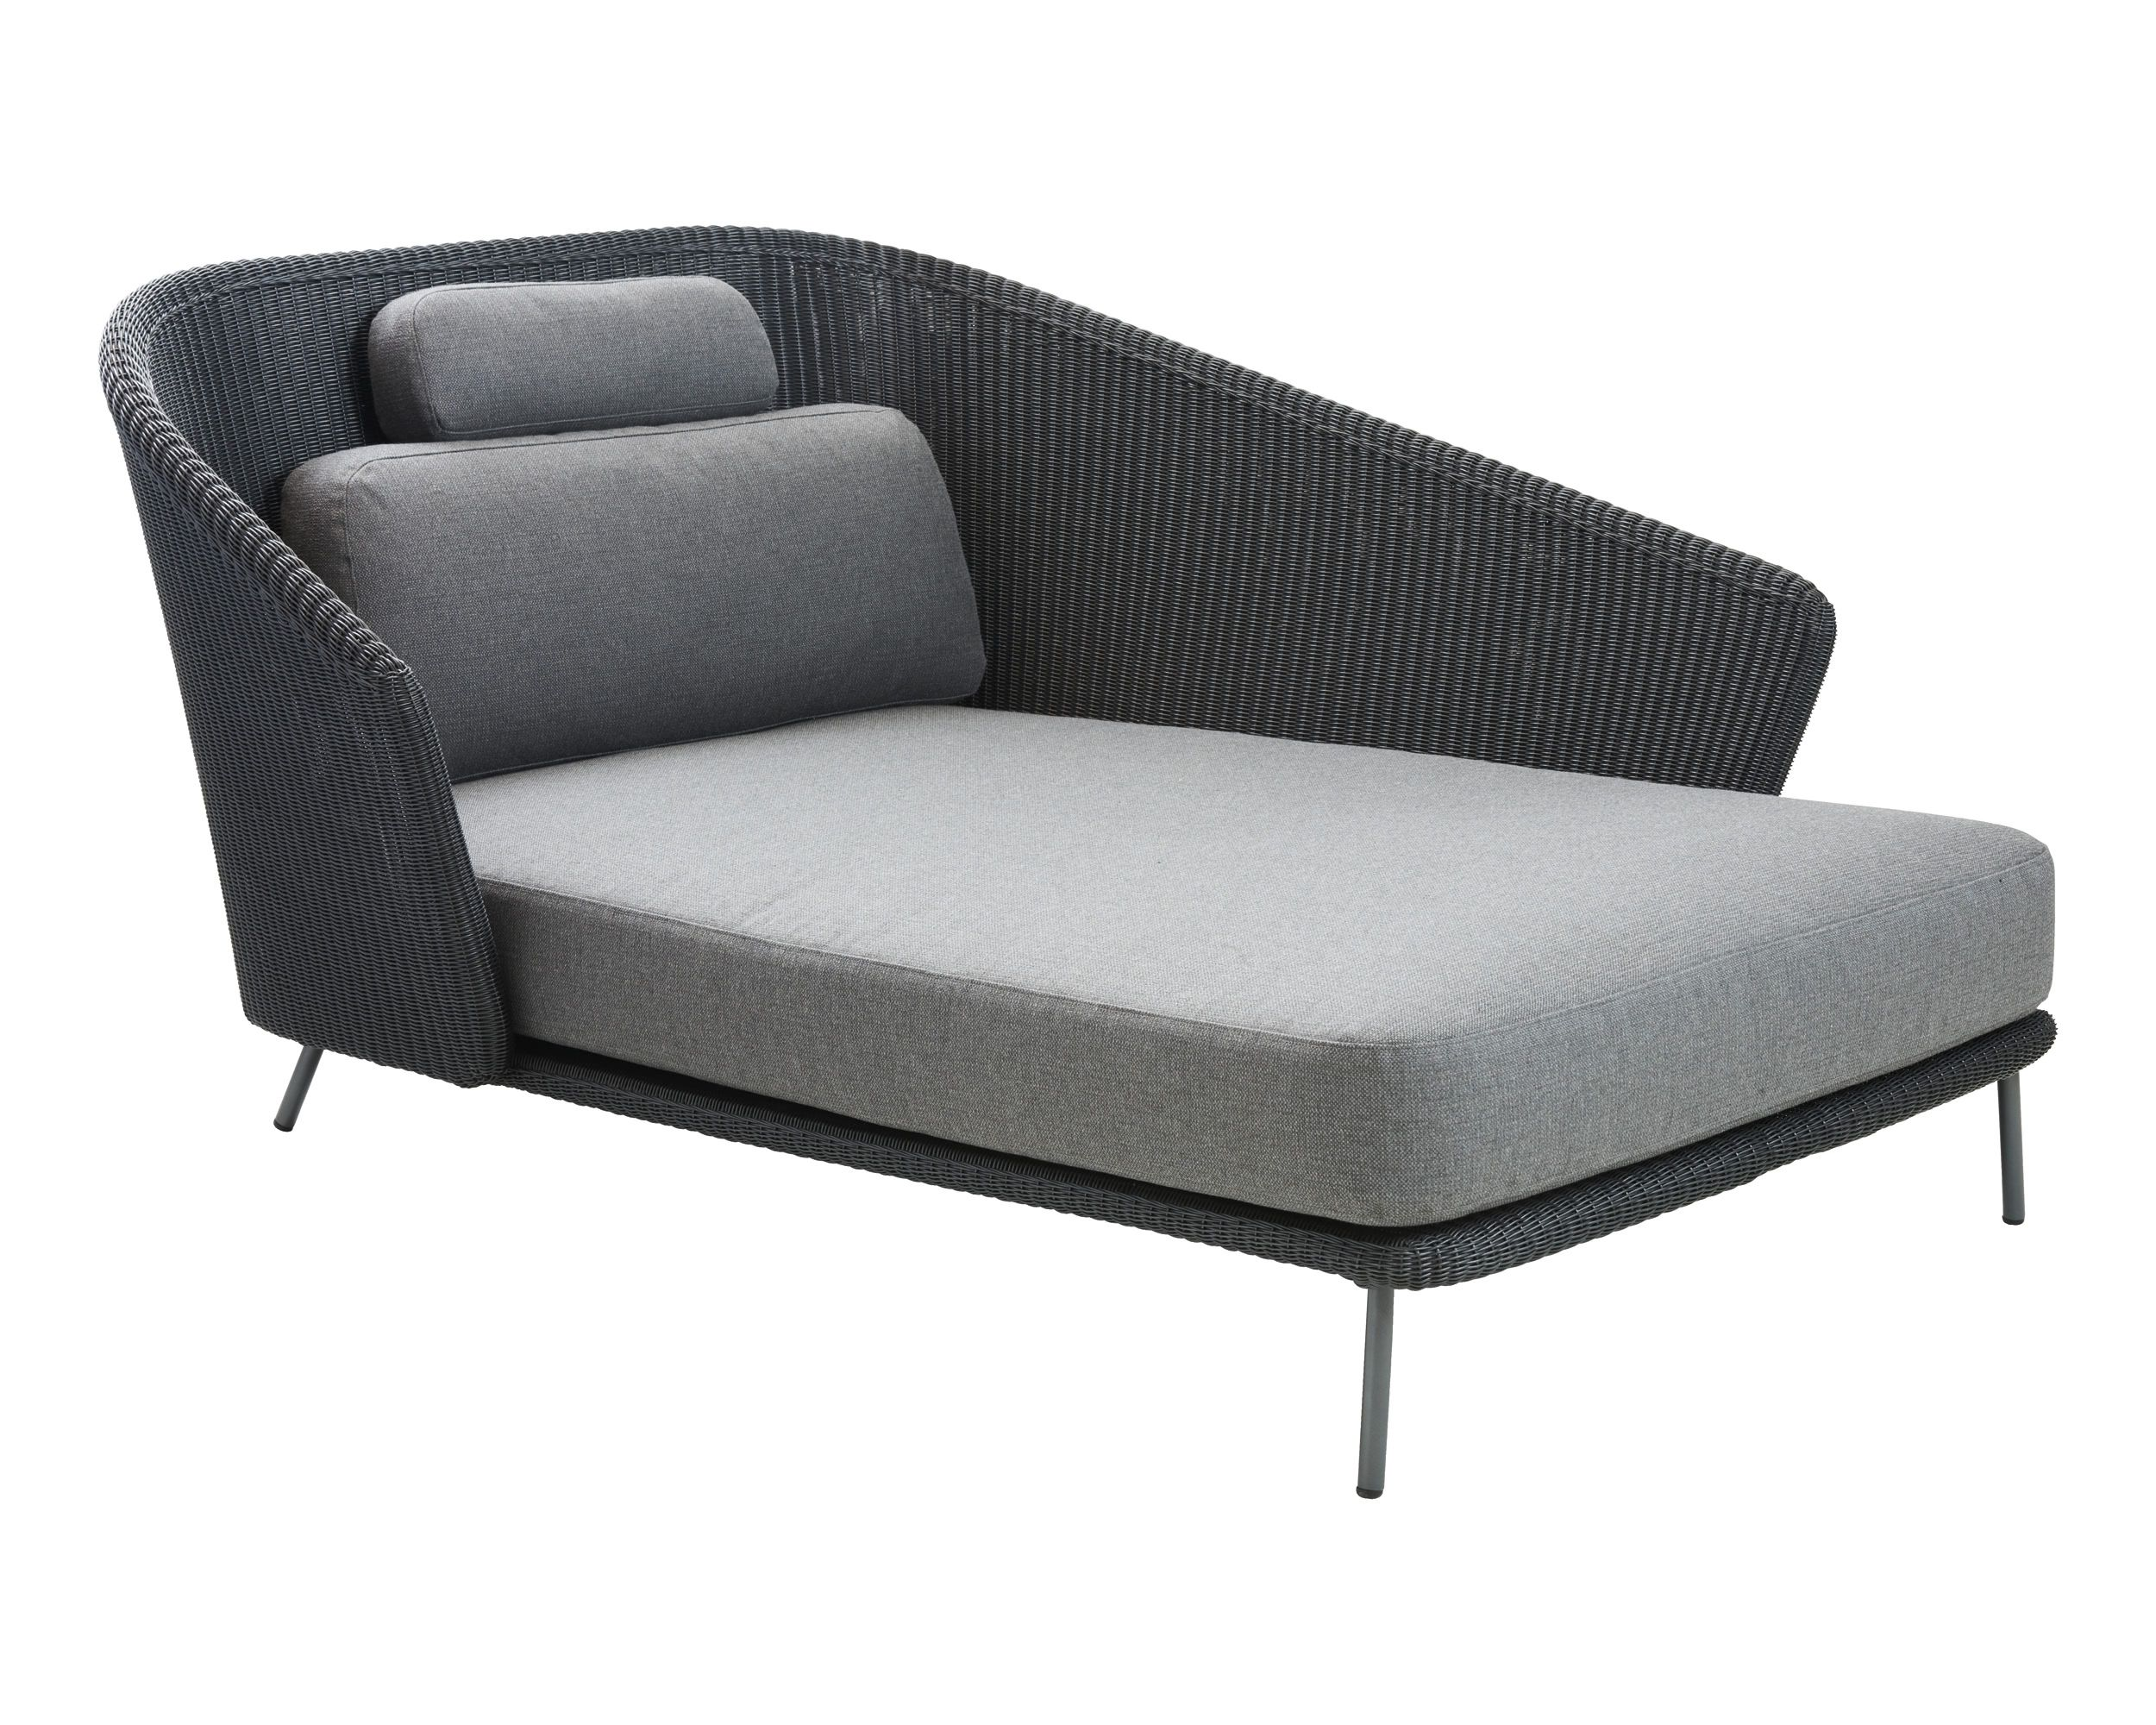 Prima Daybed, Armlehne links